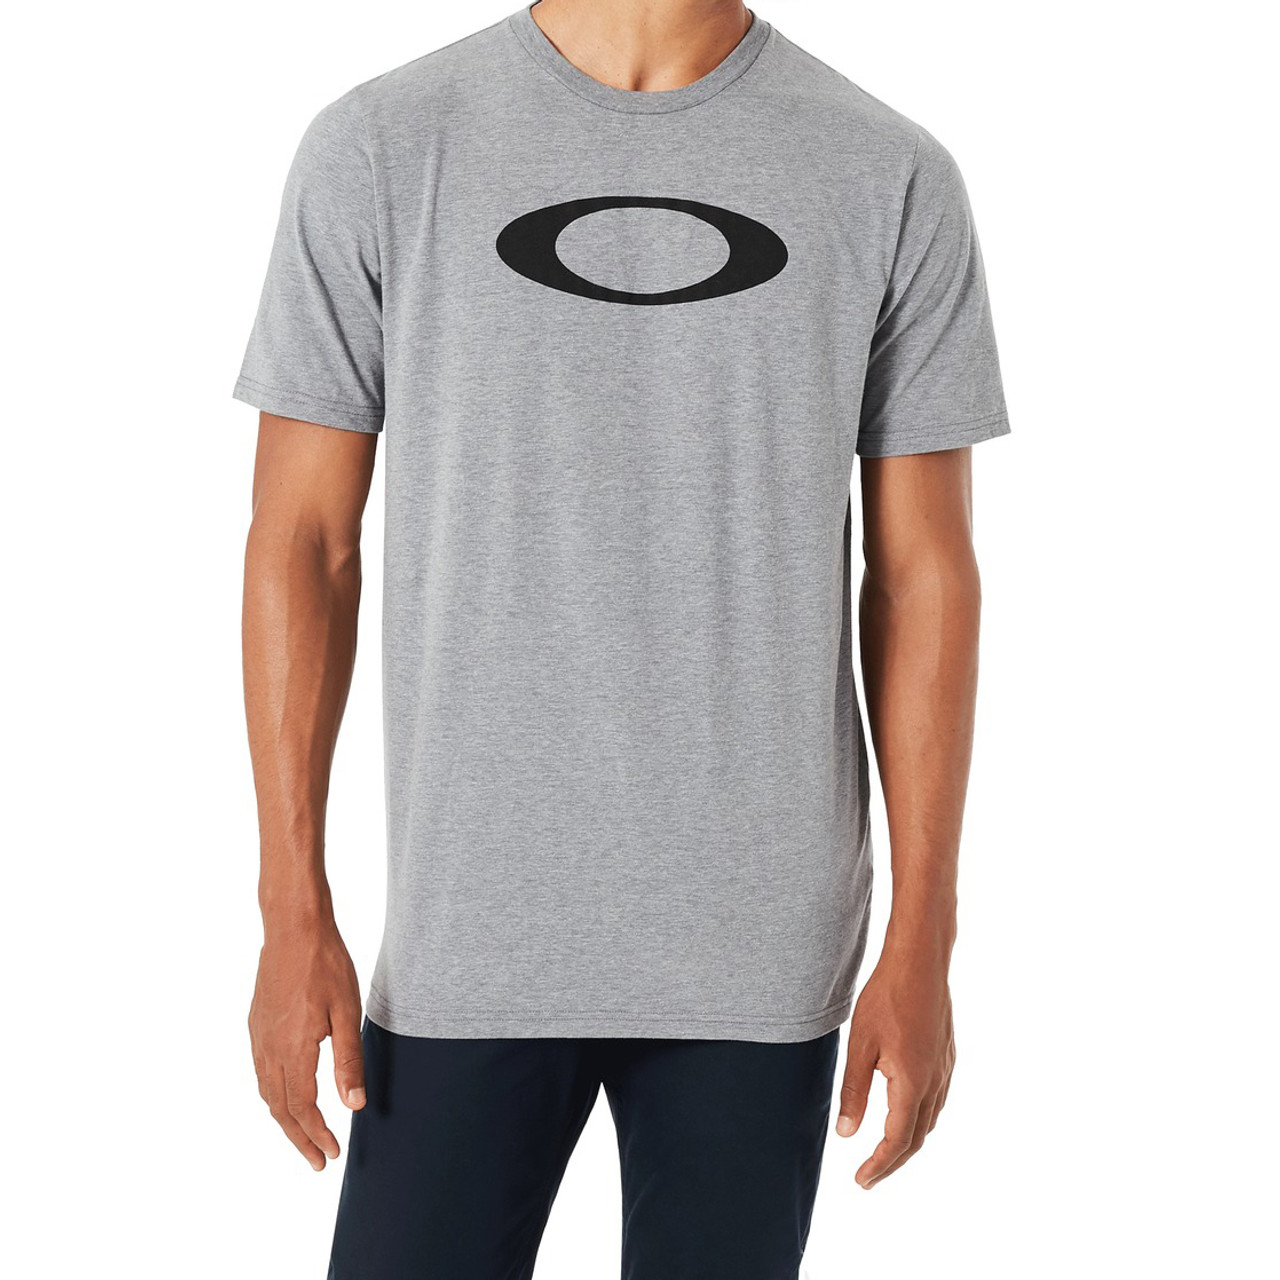 260aad3c00e Oakley Tee Shirt - Bold Ellipse - Stone Grey - Surf and Dirt